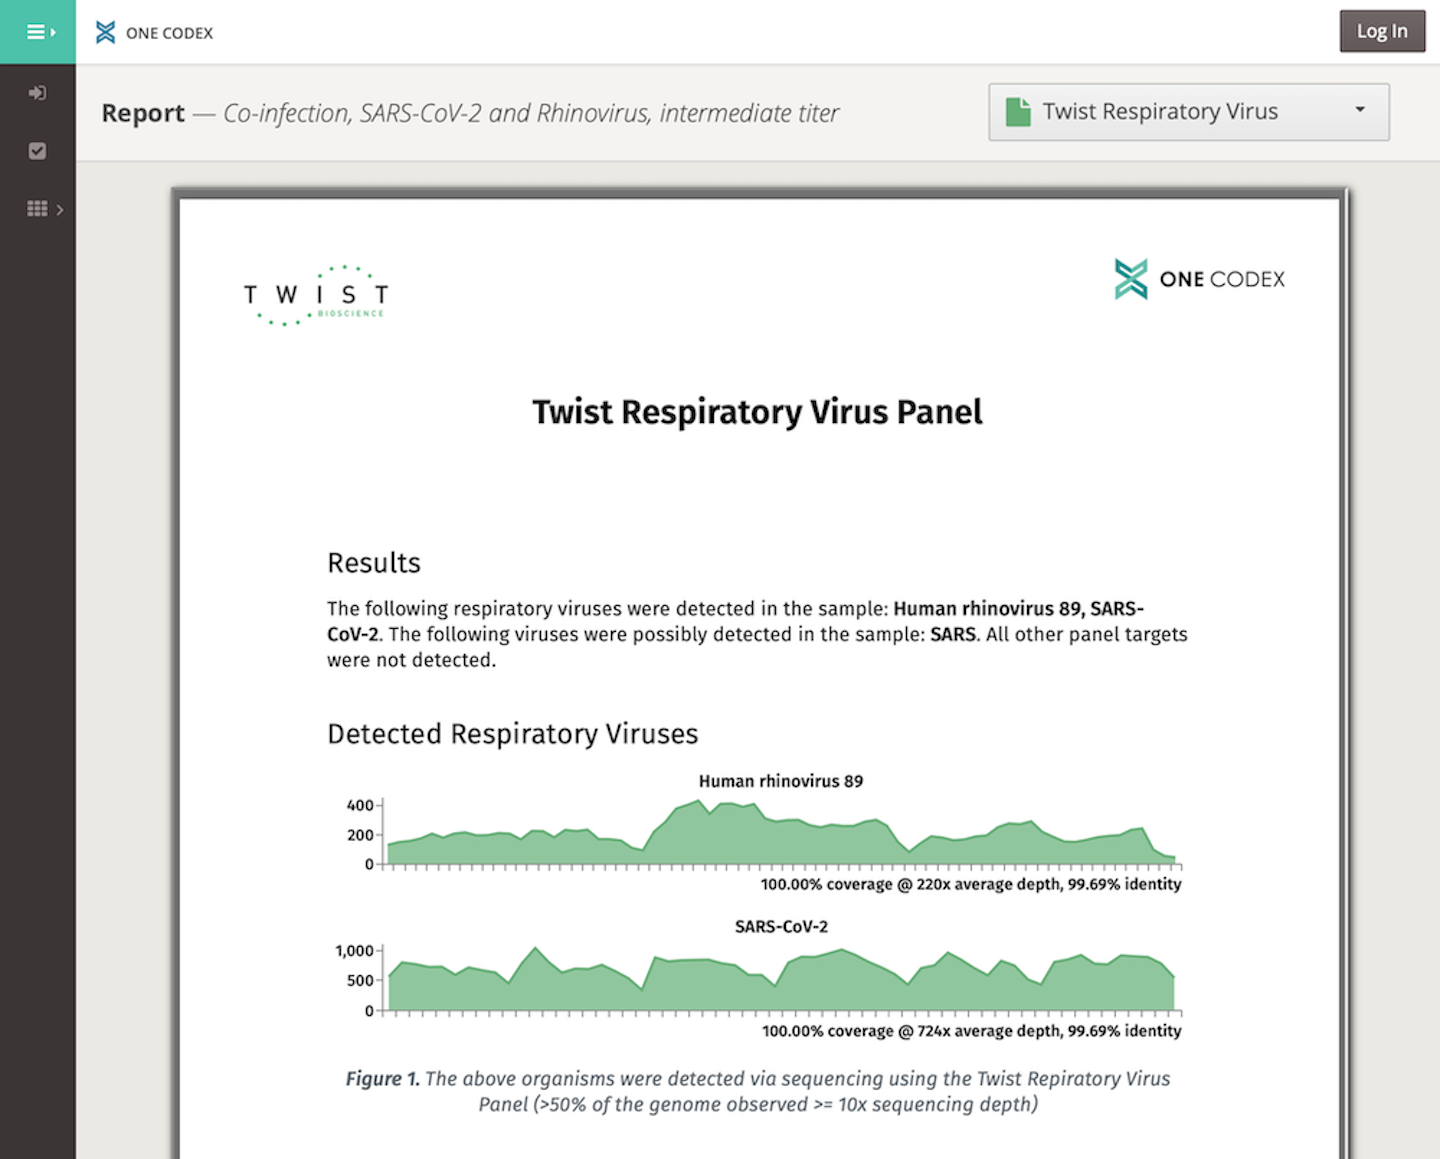 One Codex offers a rapid, easy-to-interpret analysis for the Twist Respiratory Virus Research Panel